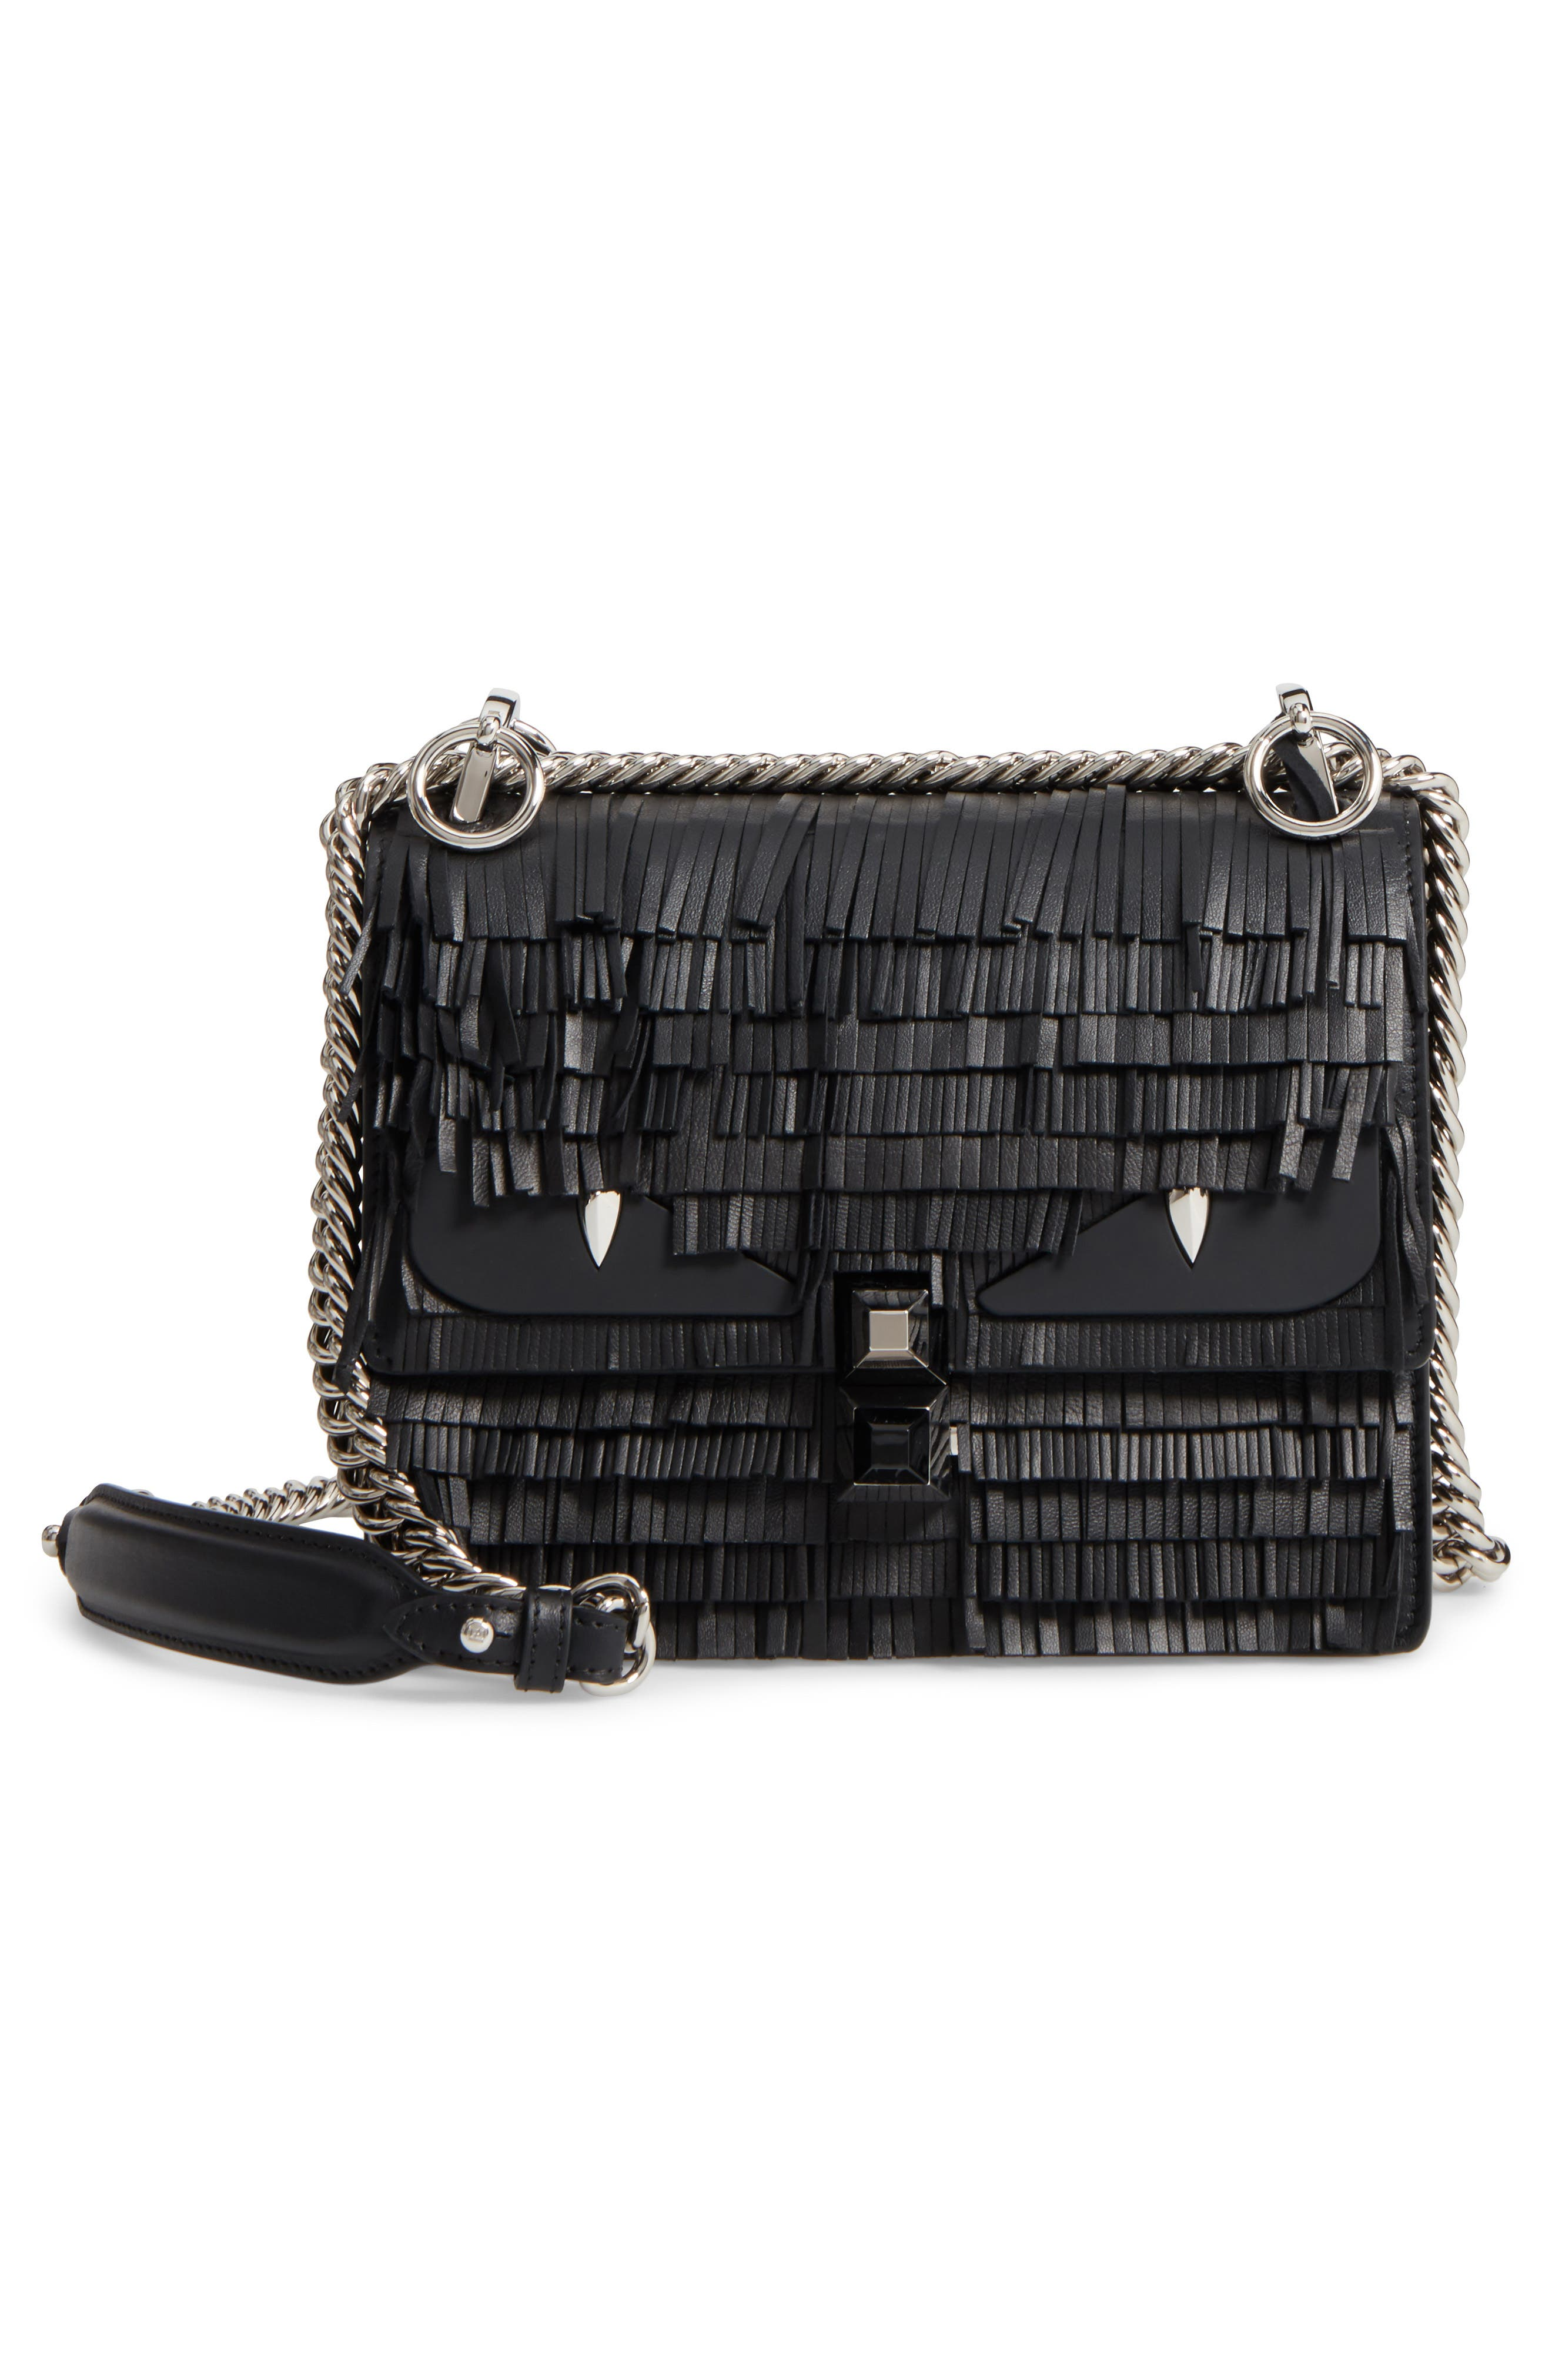 Alternate Image 1 Selected - Fendi Small Kan I Fringe Monster Calfskin Shoulder Bag